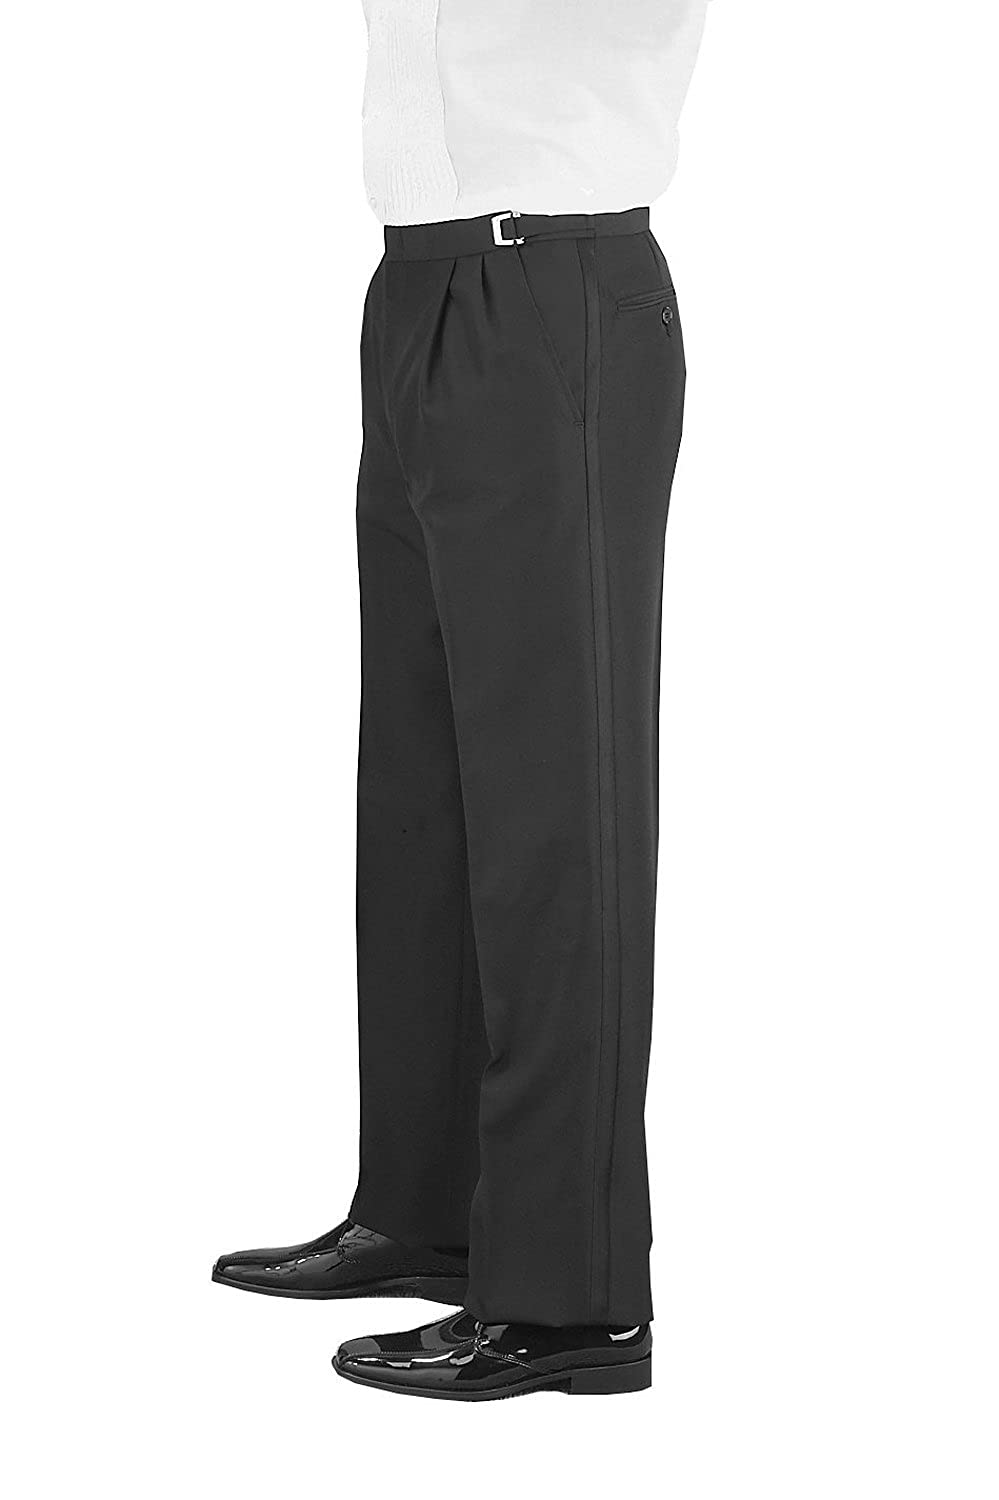 SixStarUniforms Men Black Adjustable Pleated Front Tuxedo Pants 6000-PANTS